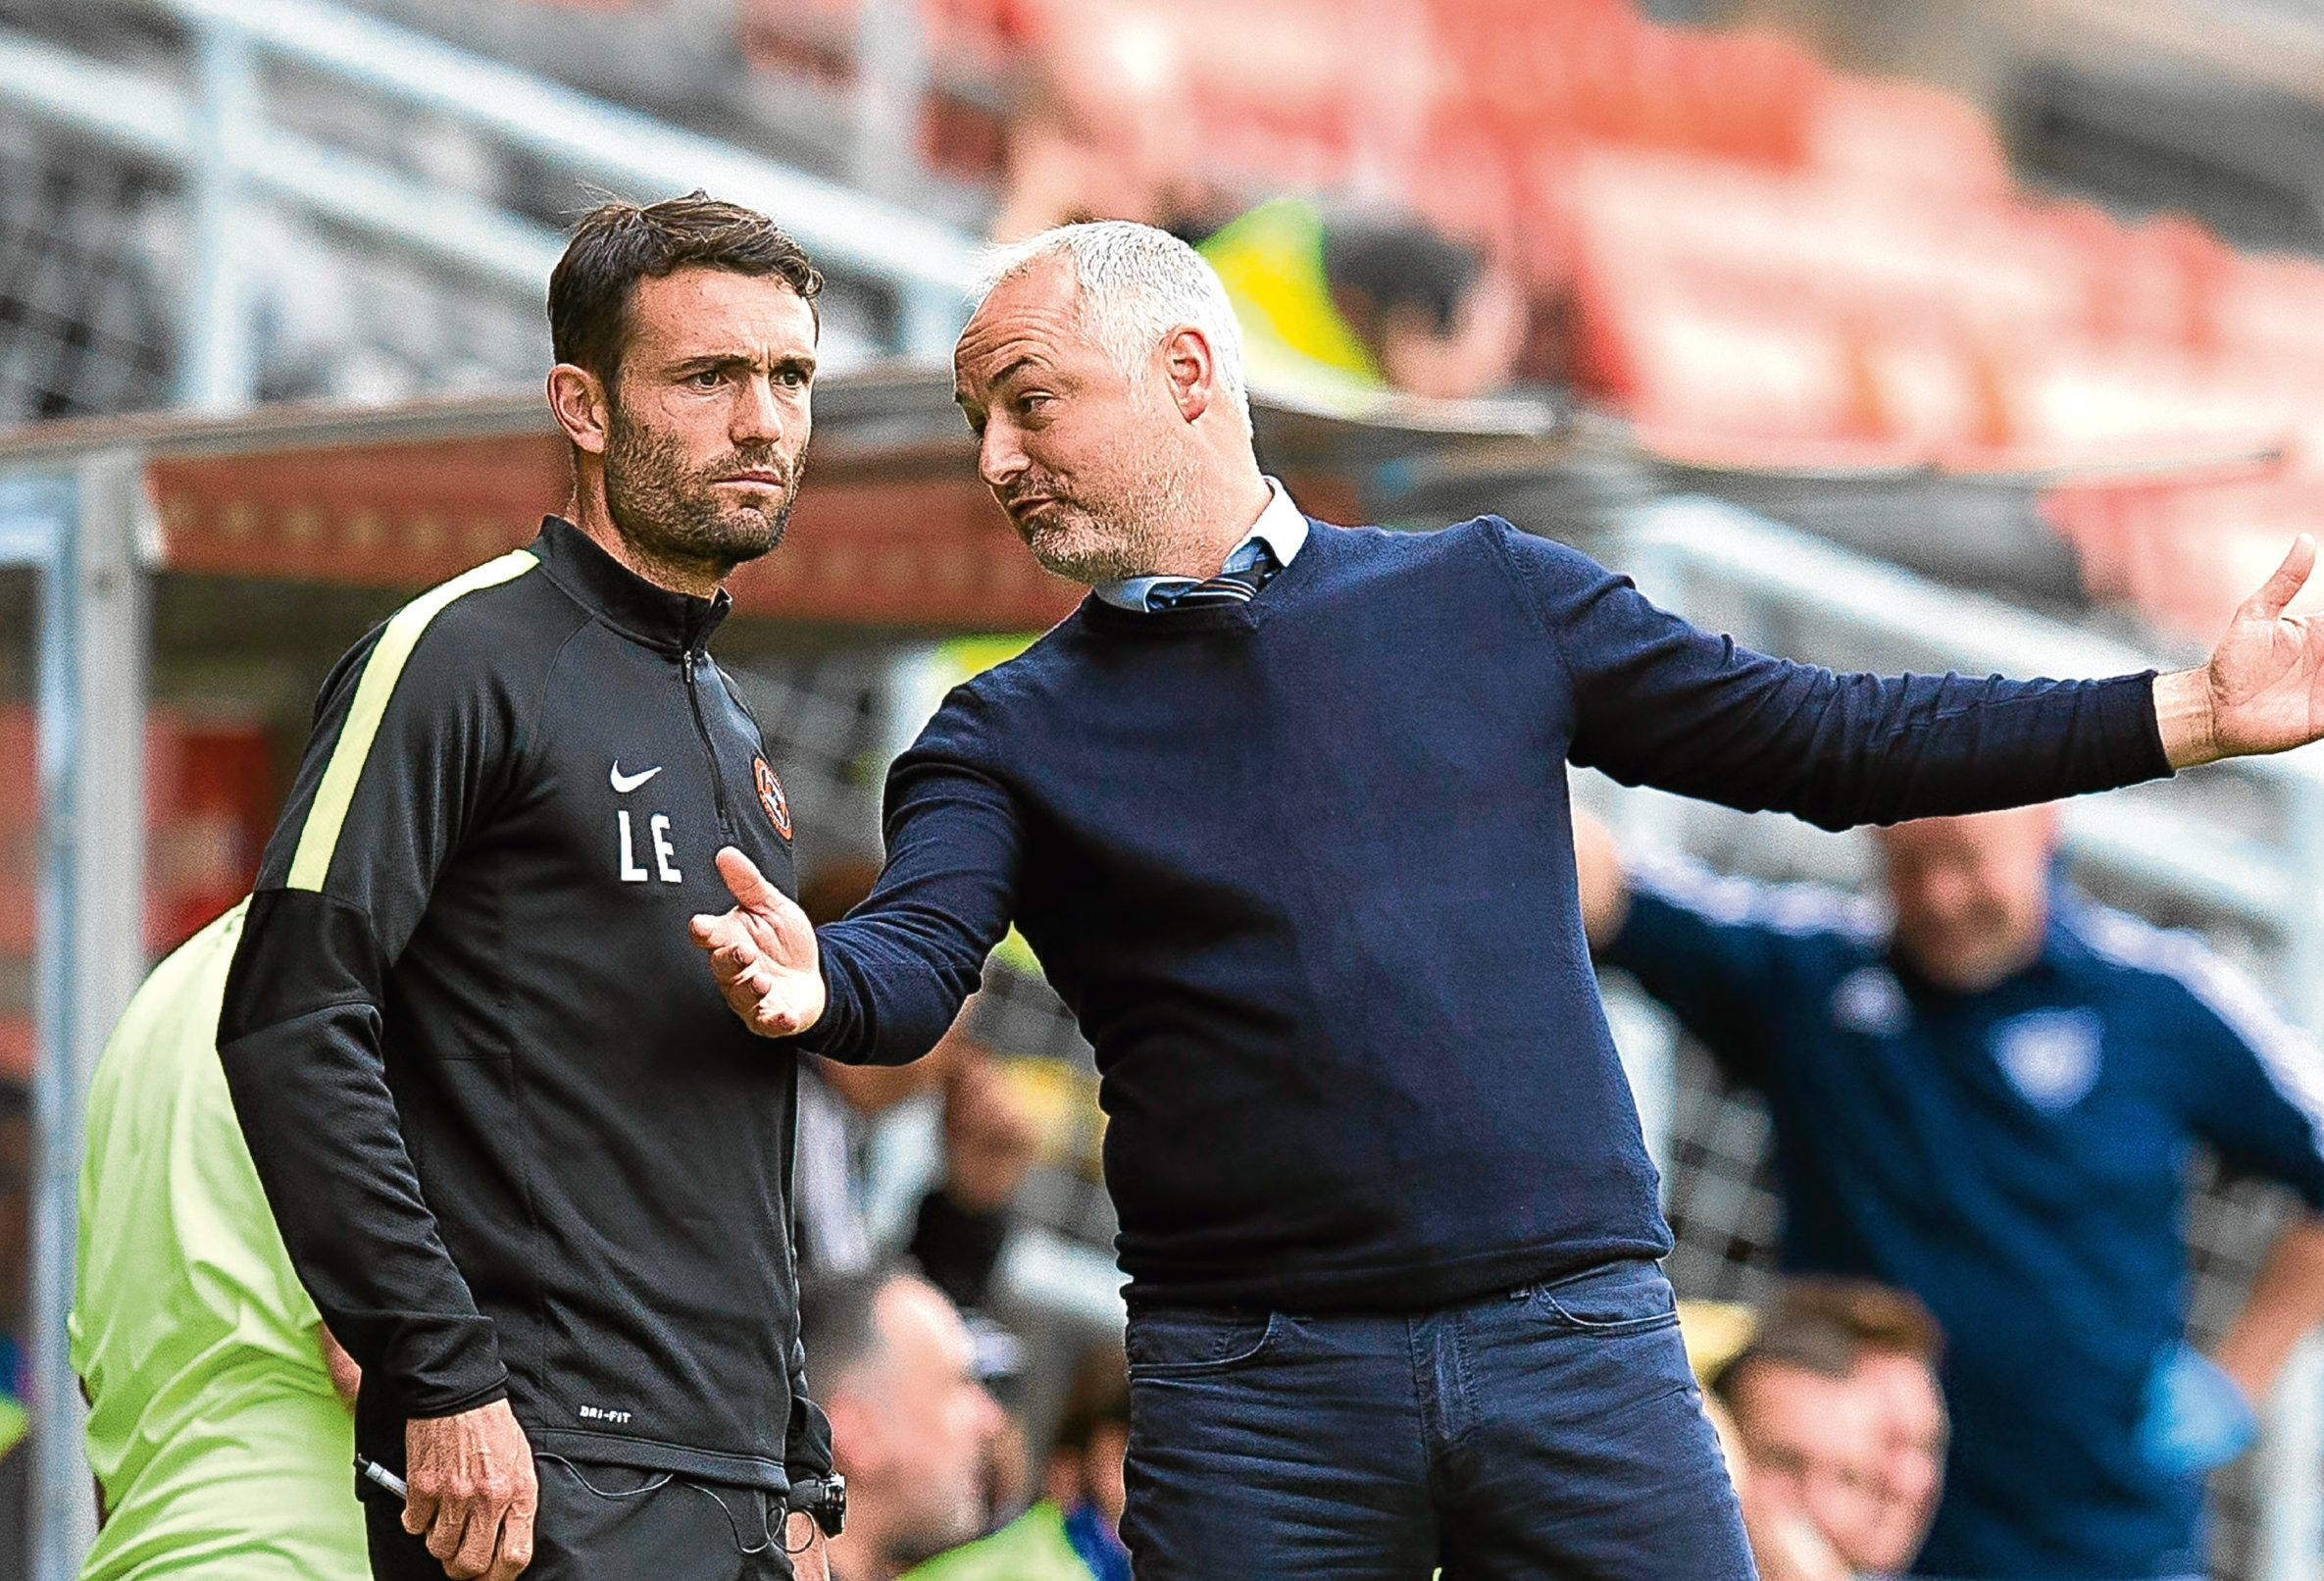 Dundee United boss Ray McKinnon (right) and his assistant Laurie Ellis